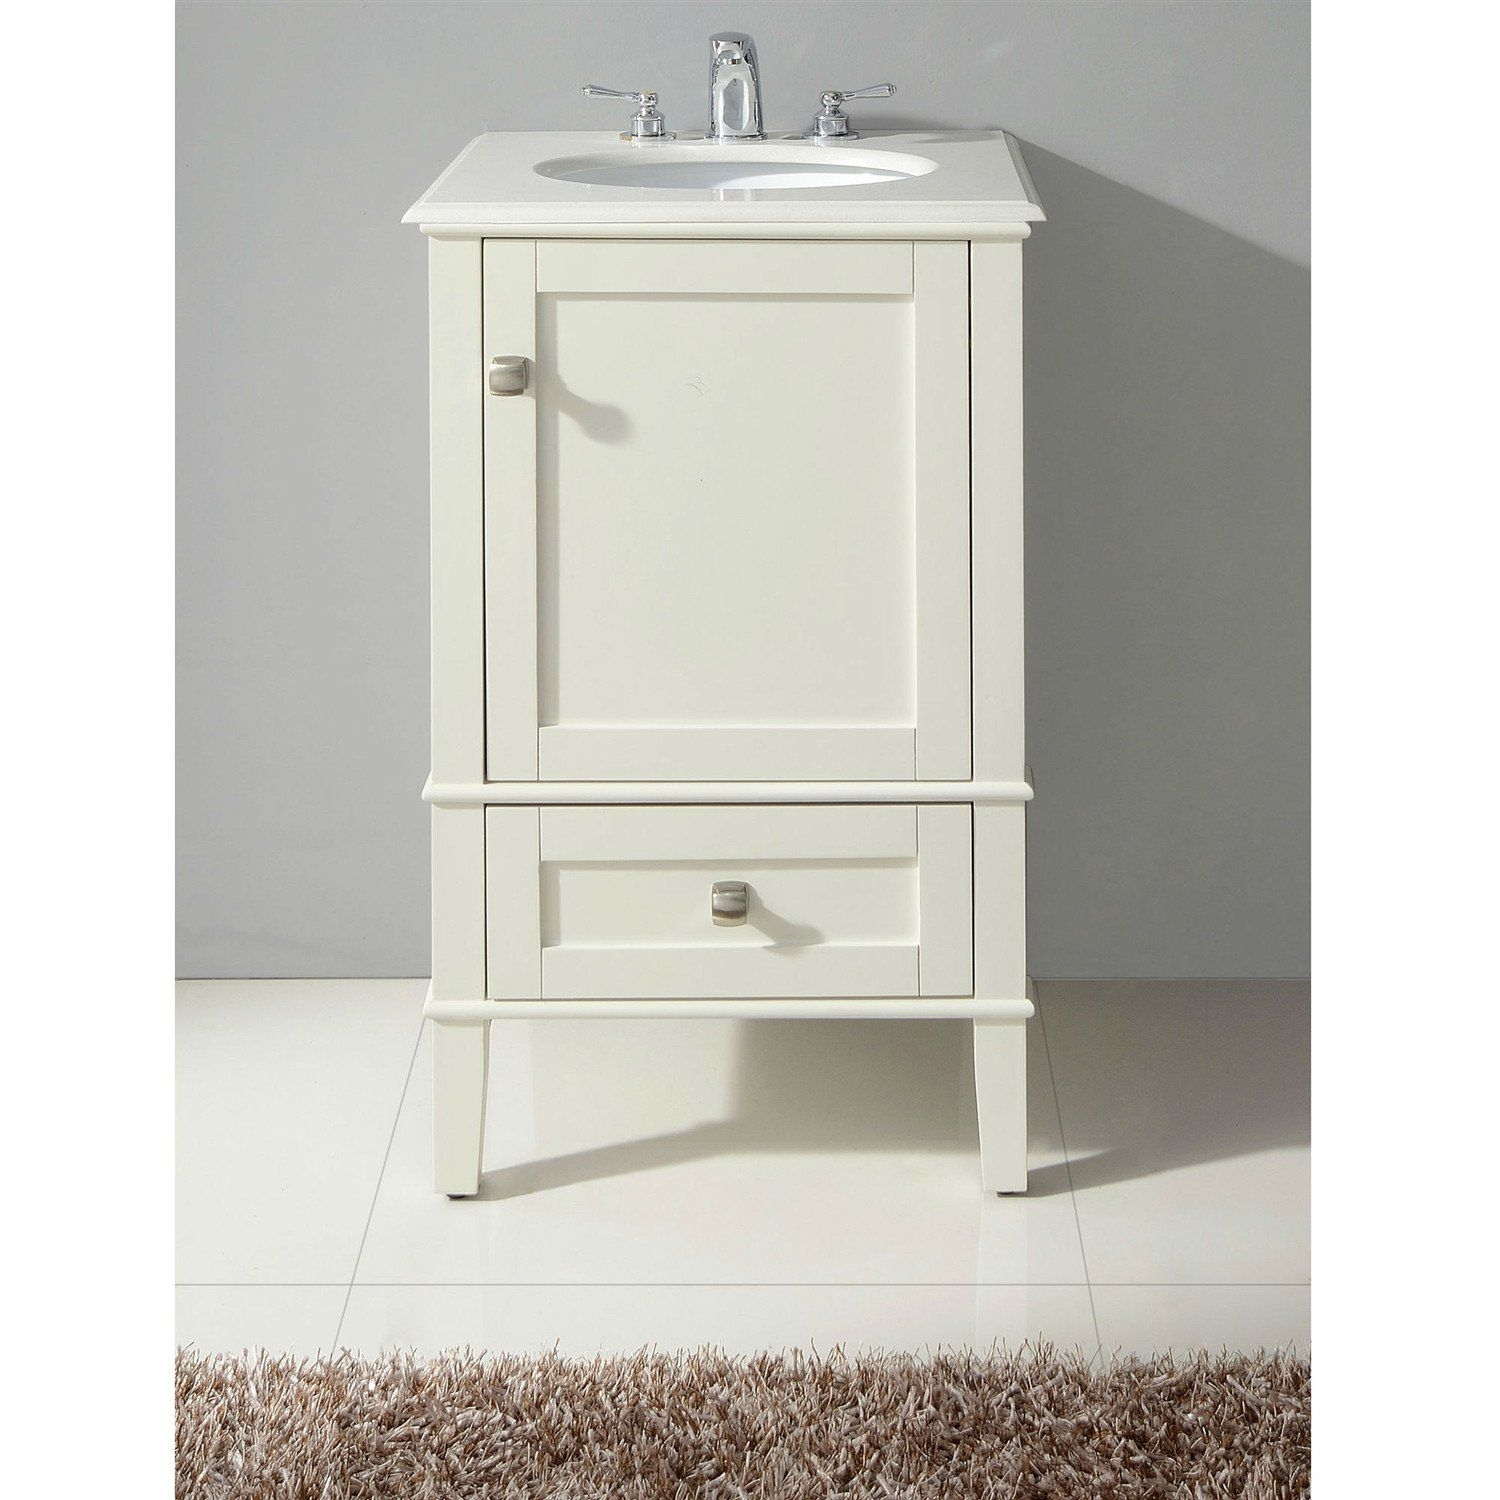 This 21 Inch Single Bathroom Vanity Set With Off White Marble Top Would Be A Great Addition To Your Home Bathroom Vanities Without Tops Vanity Bathroom Vanity